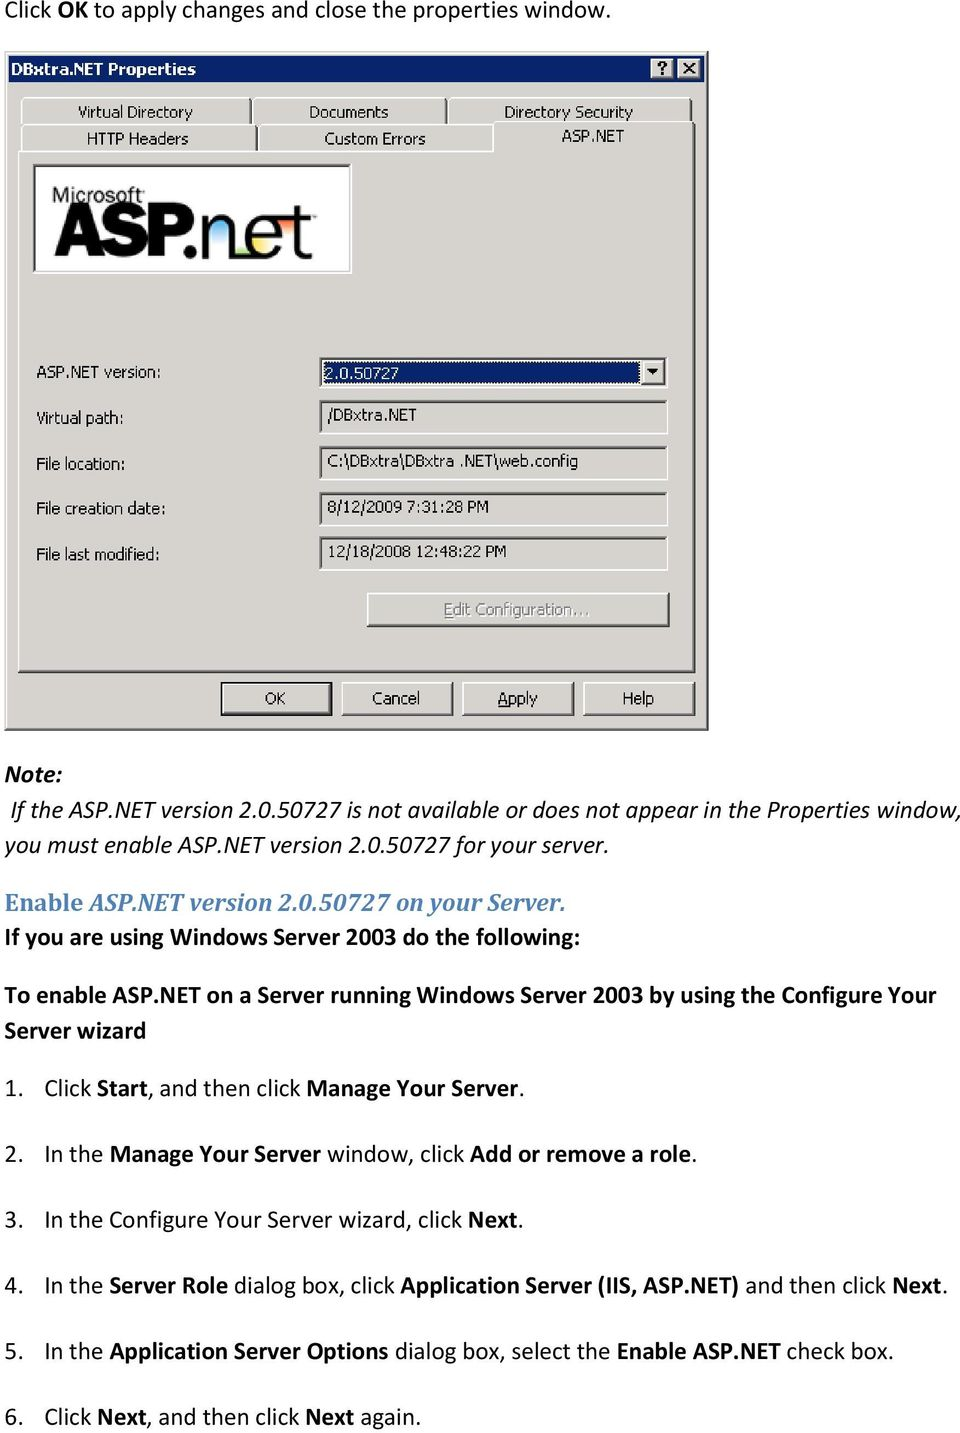 NET on a Server running Windows Server 2003 by using the Configure Your Server wizard 1. Click Start, and then click Manage Your Server. 2. In the Manage Your Server window, click Add or remove a role.